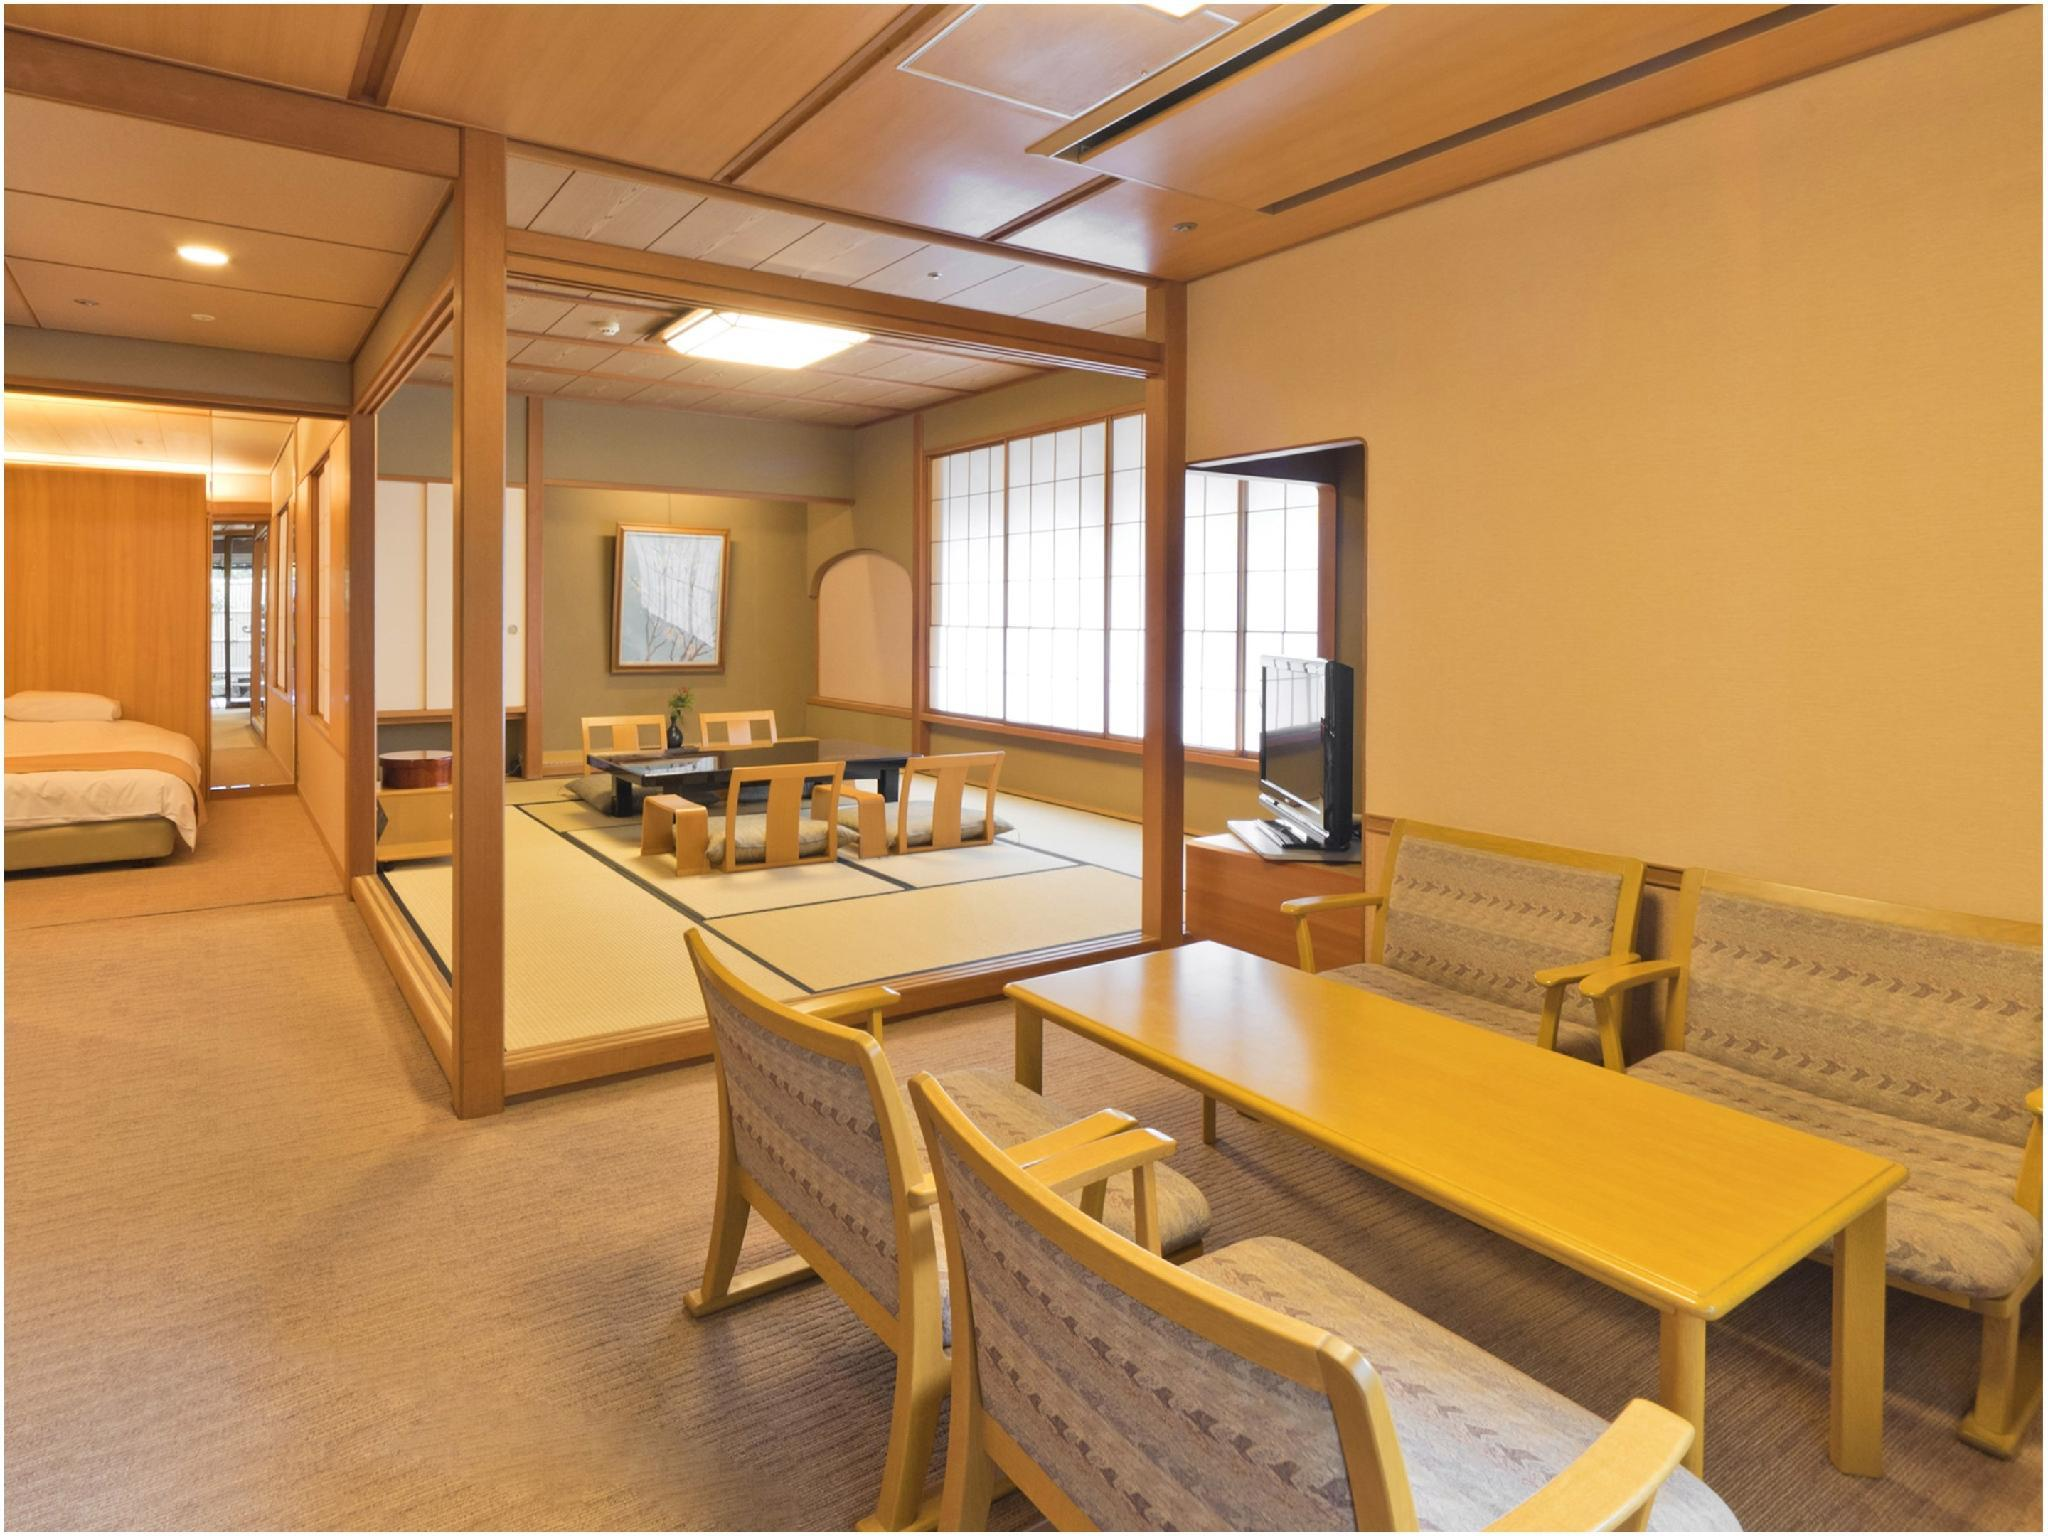 能登渚亭 市街景 和洋式房(精致双人双床房+露天风吕) (Superior Japanese/Western-style Room with Open-air Bath (Twin Beds, Noto Nagisatei Wing) *Street side view)